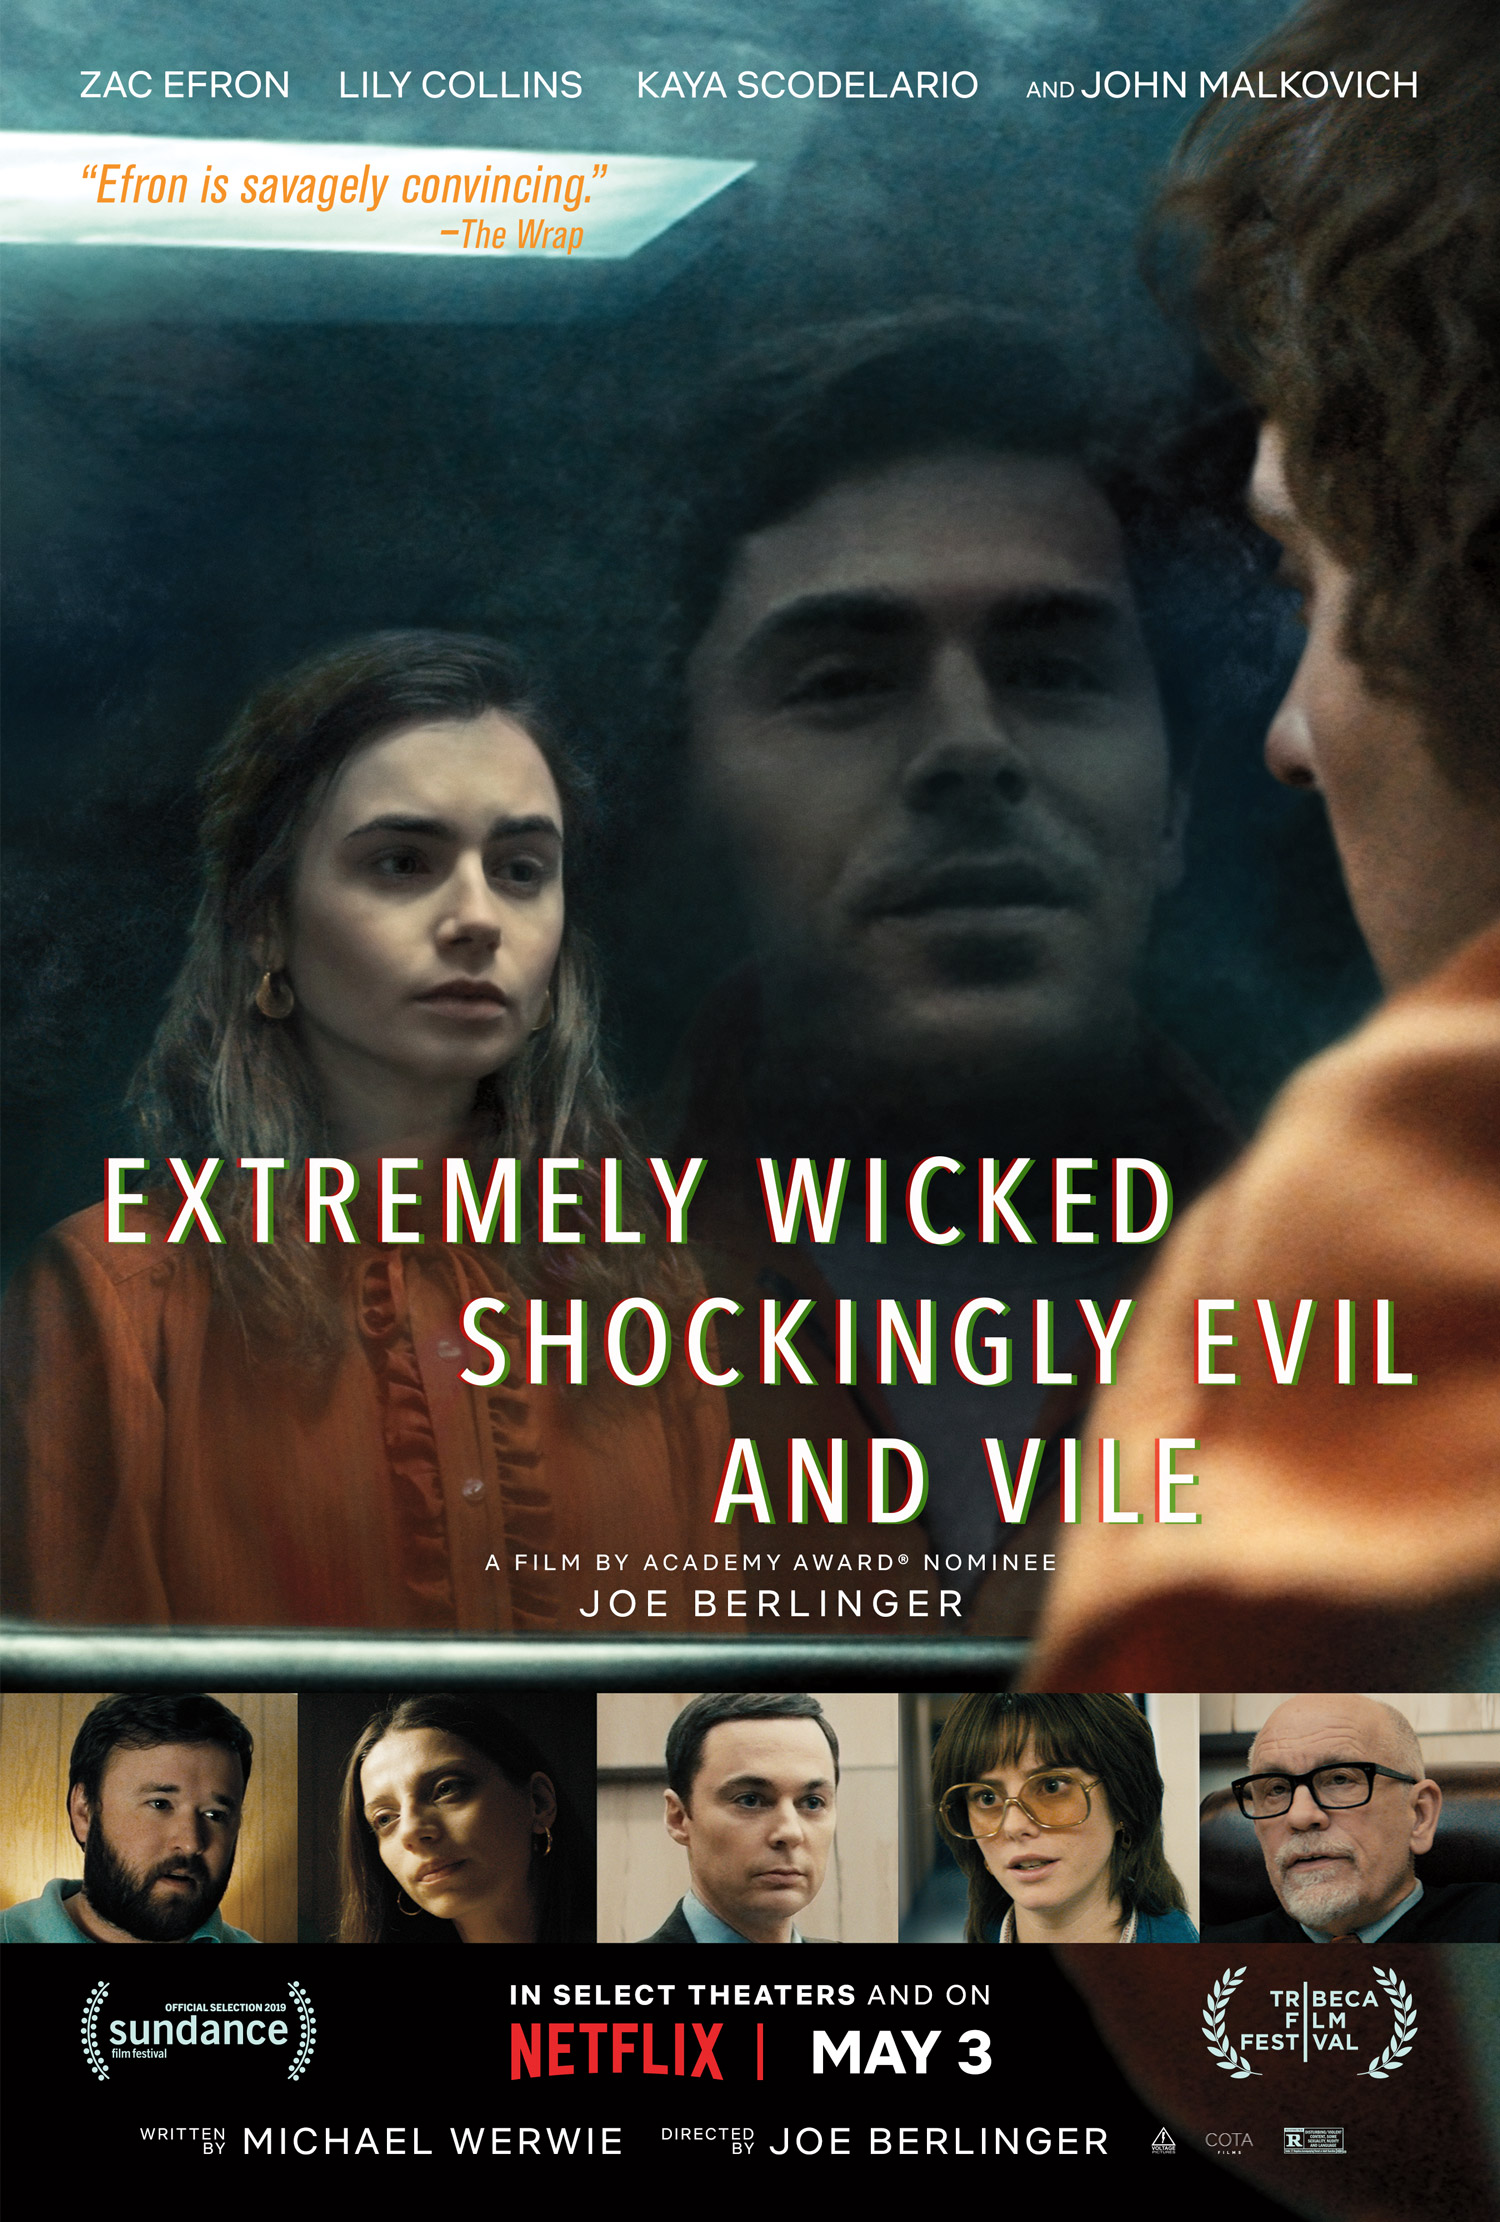 ŽAVUSIS ŽUDIKAS TEDAS BANDIS (2019) / EXTREMELY WICKED, SHOCKINGLY EVIL, AND VILE